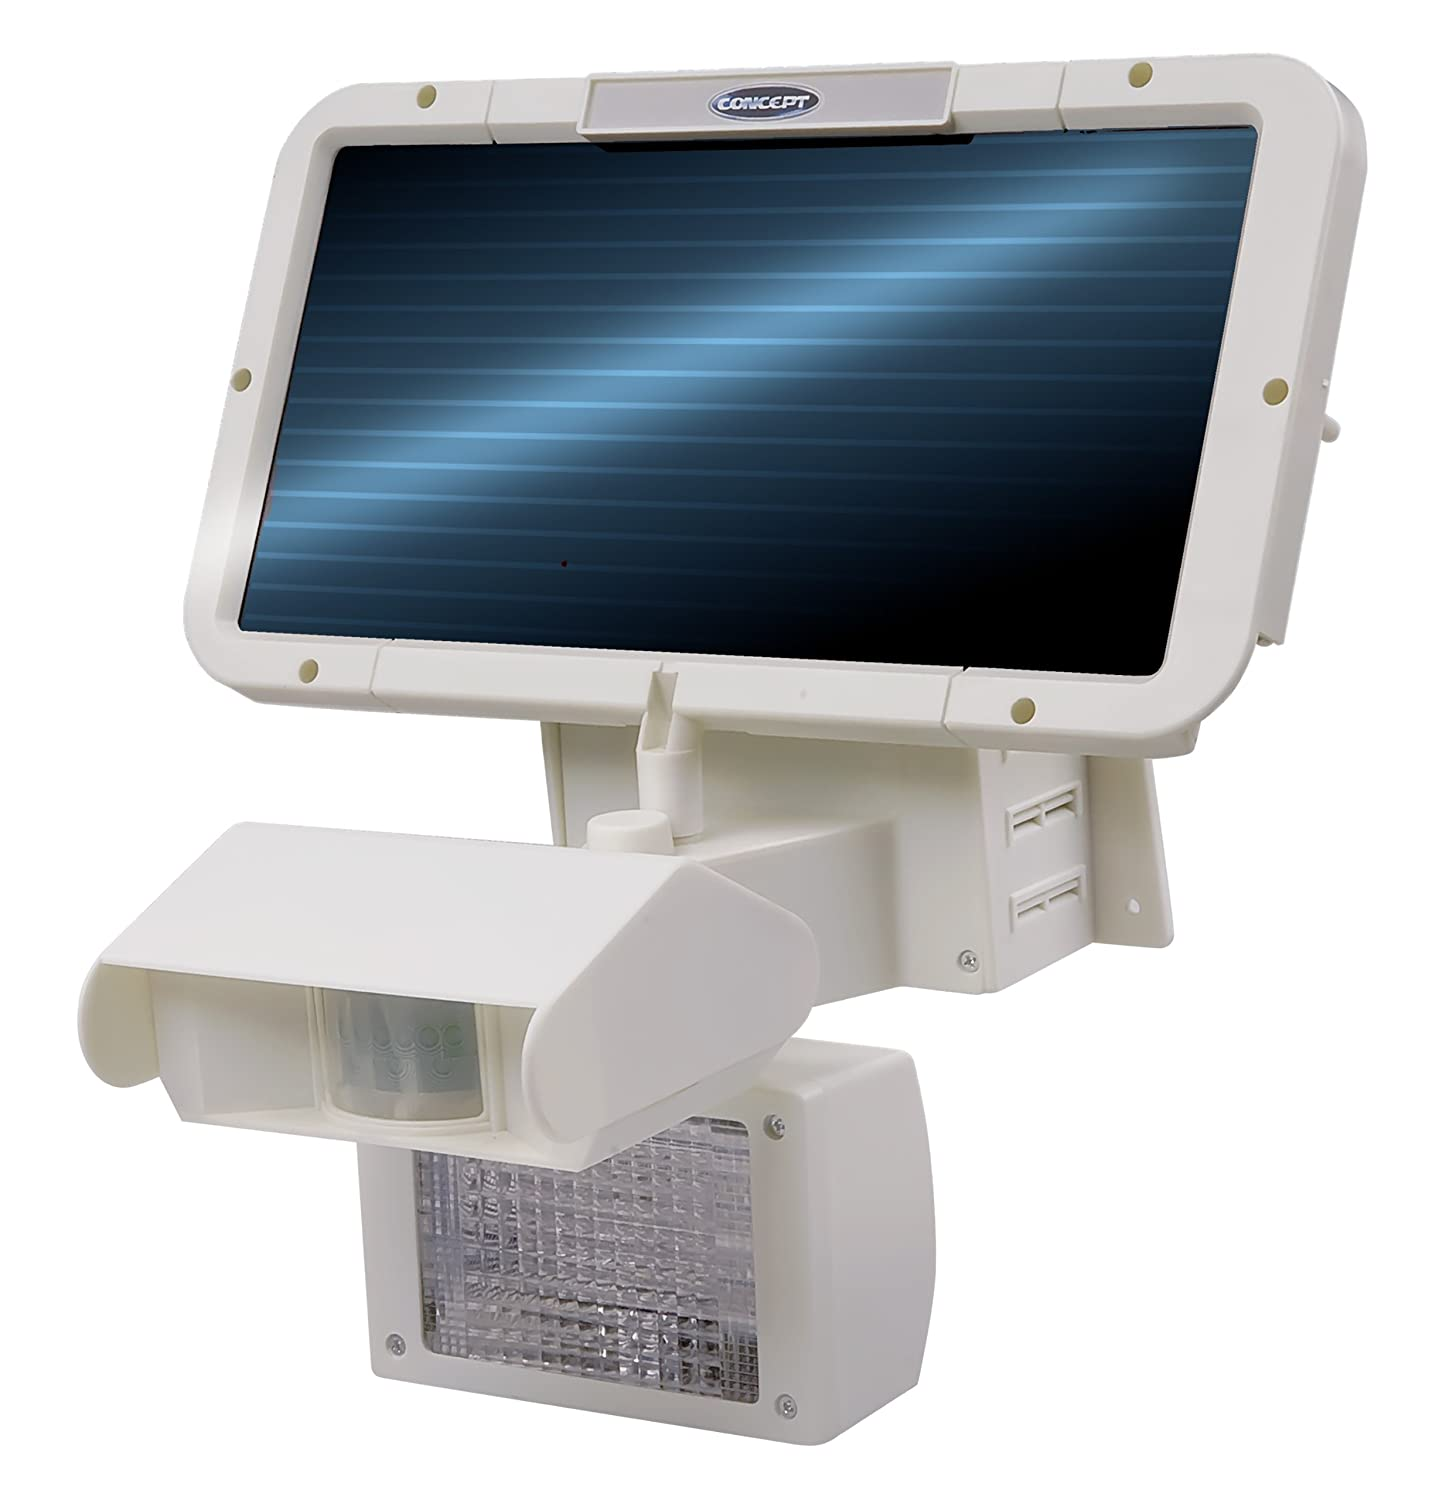 floodlight sale auto lumen for security outdoor light shop lights led prices review lighting waterproof brands solar